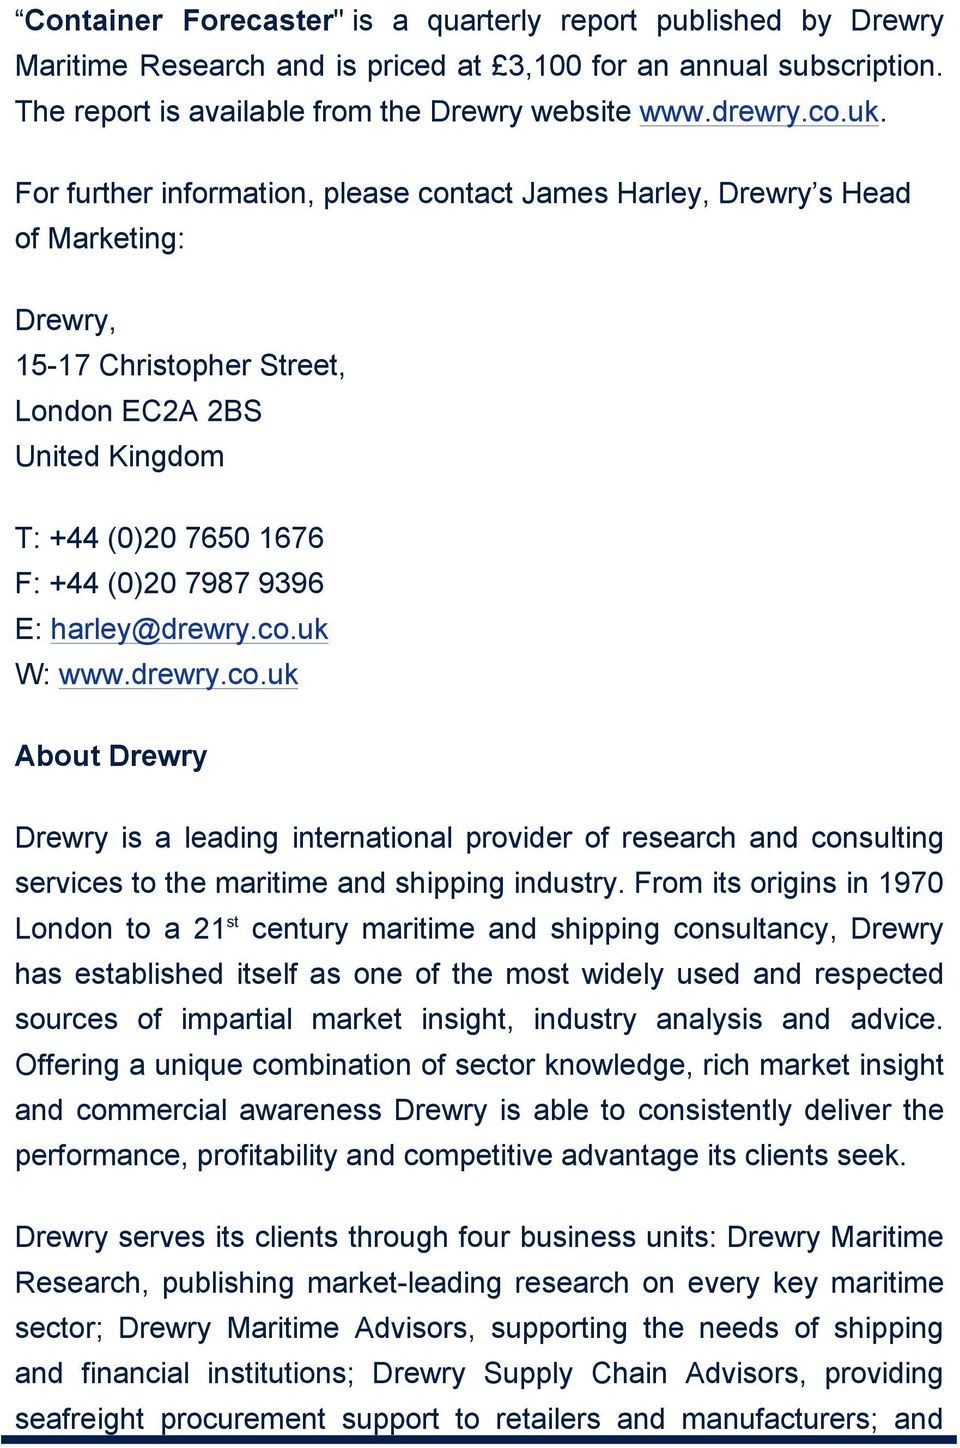 harley@drewry.co.uk W: www.drewry.co.uk About Drewry Drewry is a leading international provider of research and consulting services to the maritime and shipping industry.